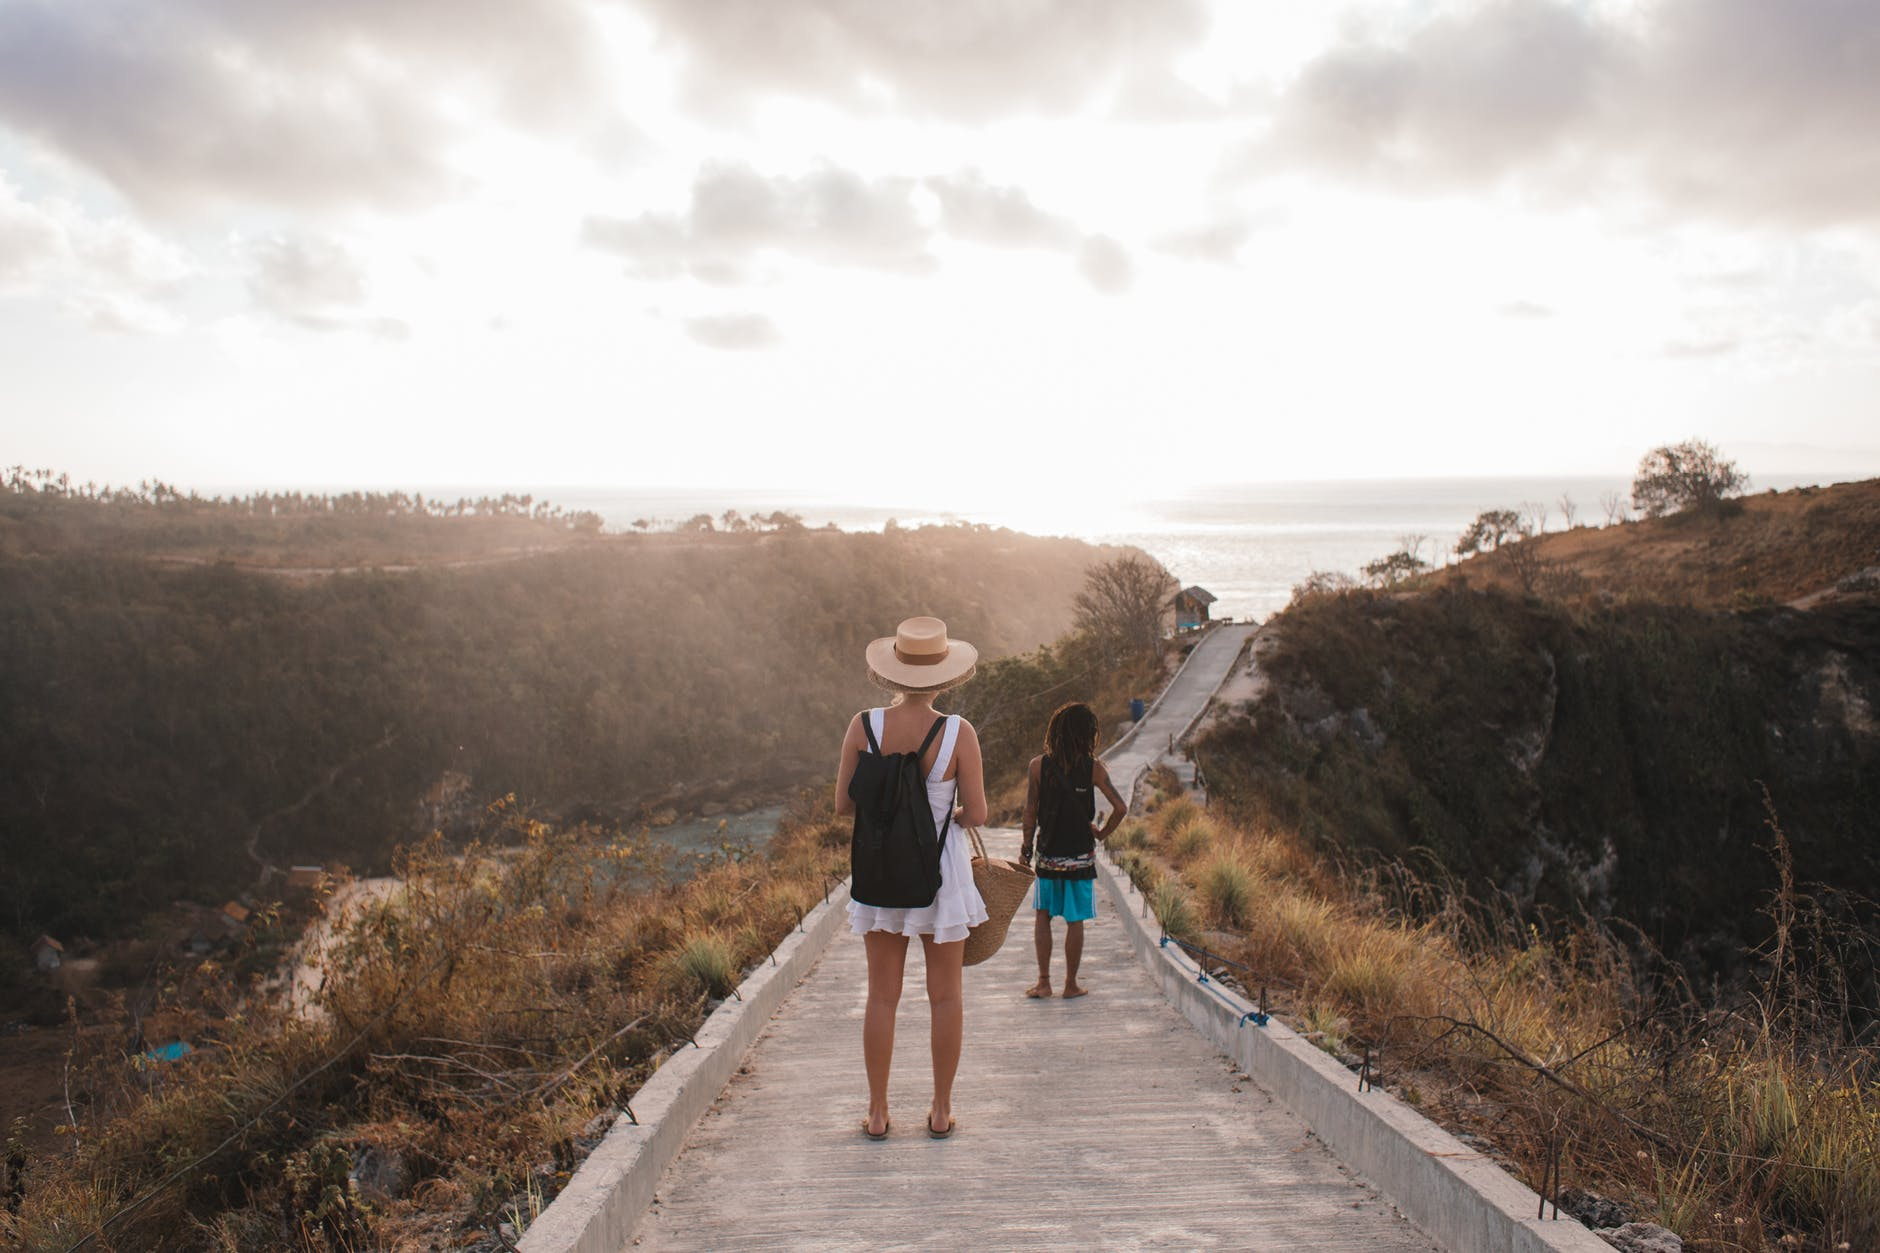 unrecognizable mother with daughter contemplating shiny sky from walkway